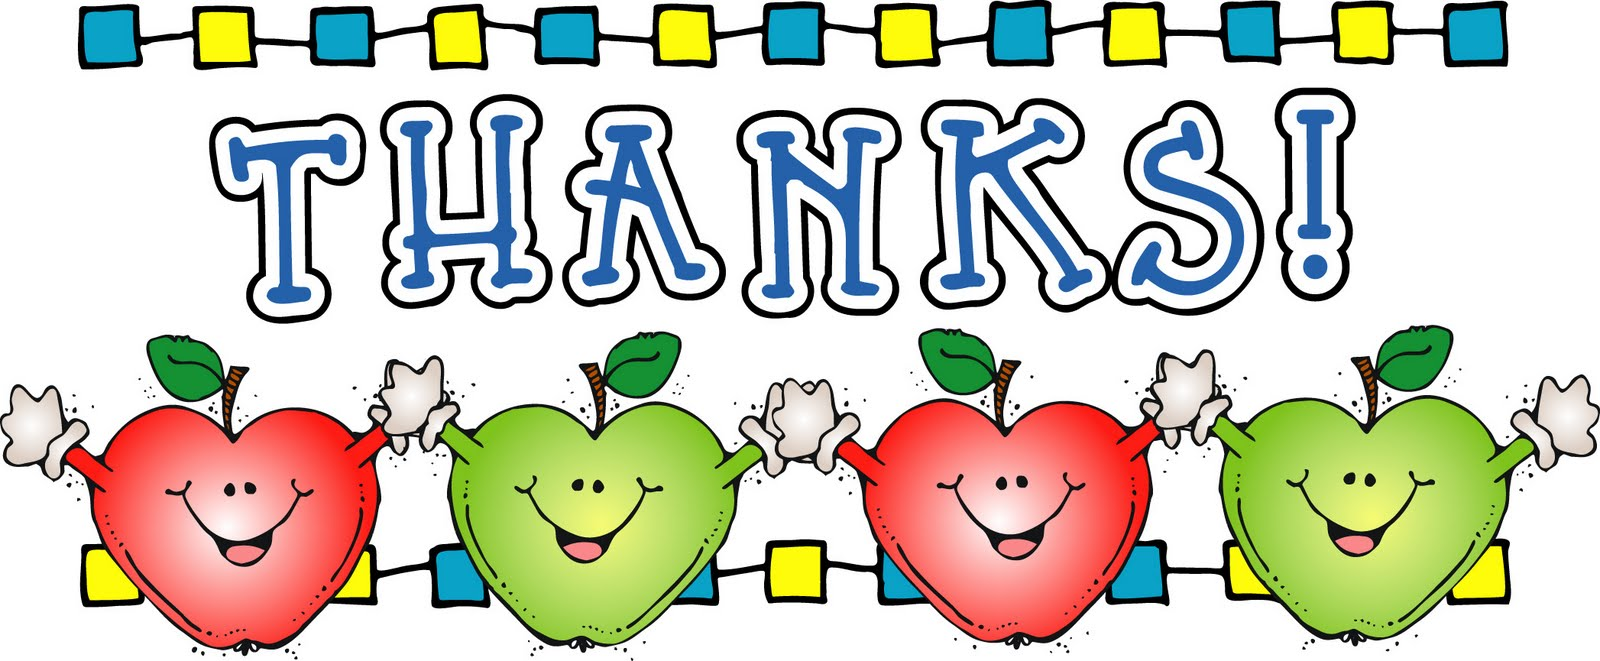 1600x661 Free Christian Thank You Clipart Images Collection